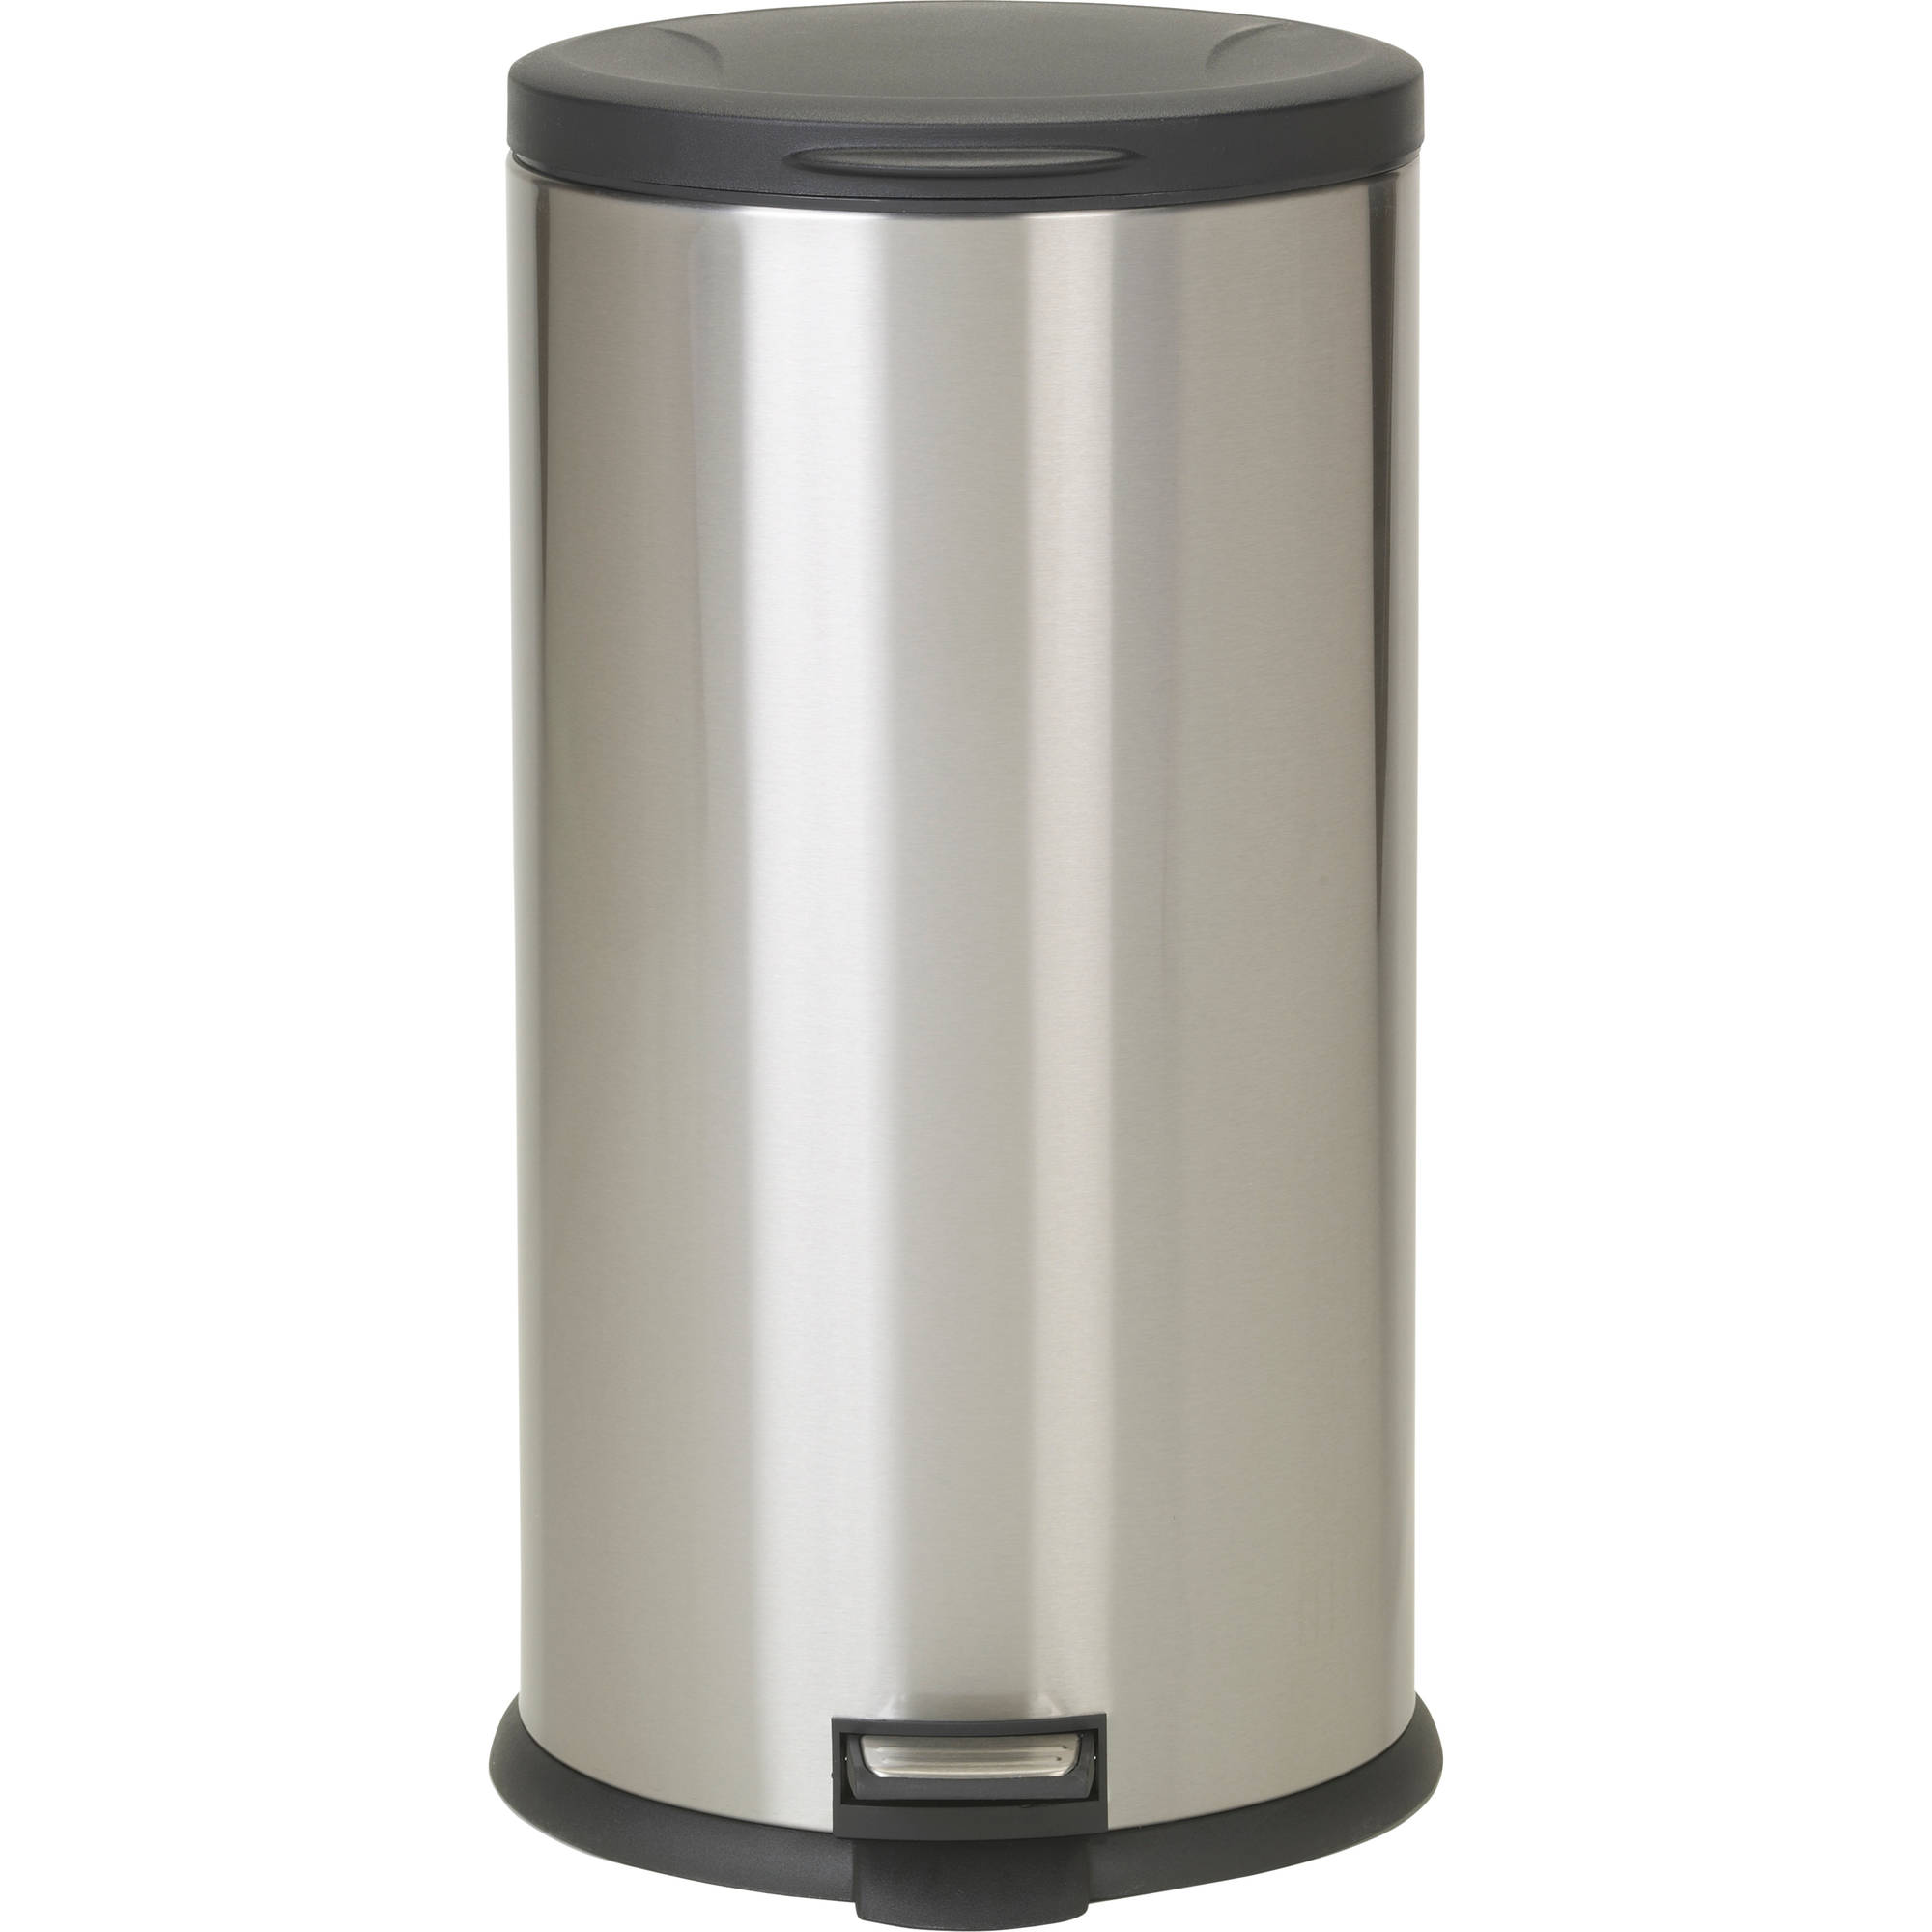 30 gallon kitchen trash can table better homes and gardens 7 9 oval at home